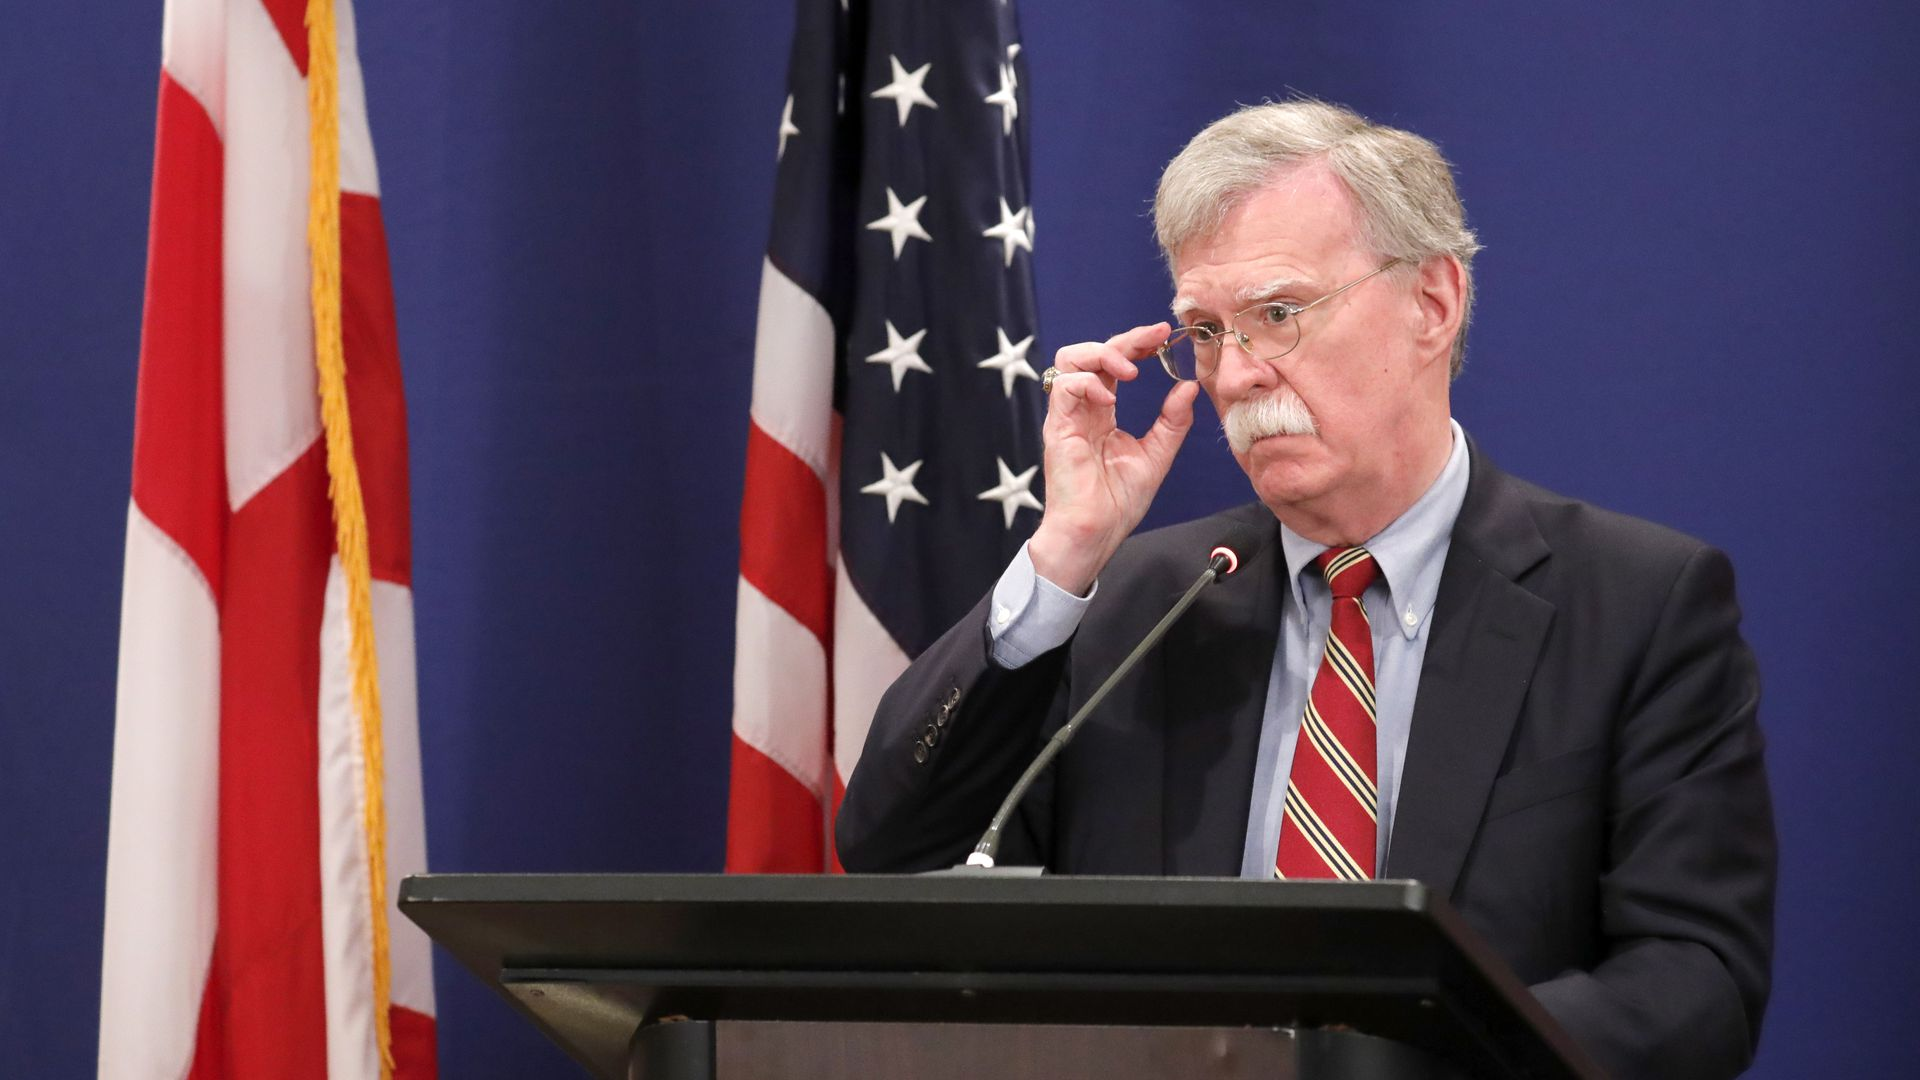 John Bolton, National Security Adviser to the US President, gives a press briefing in Tbilisi.